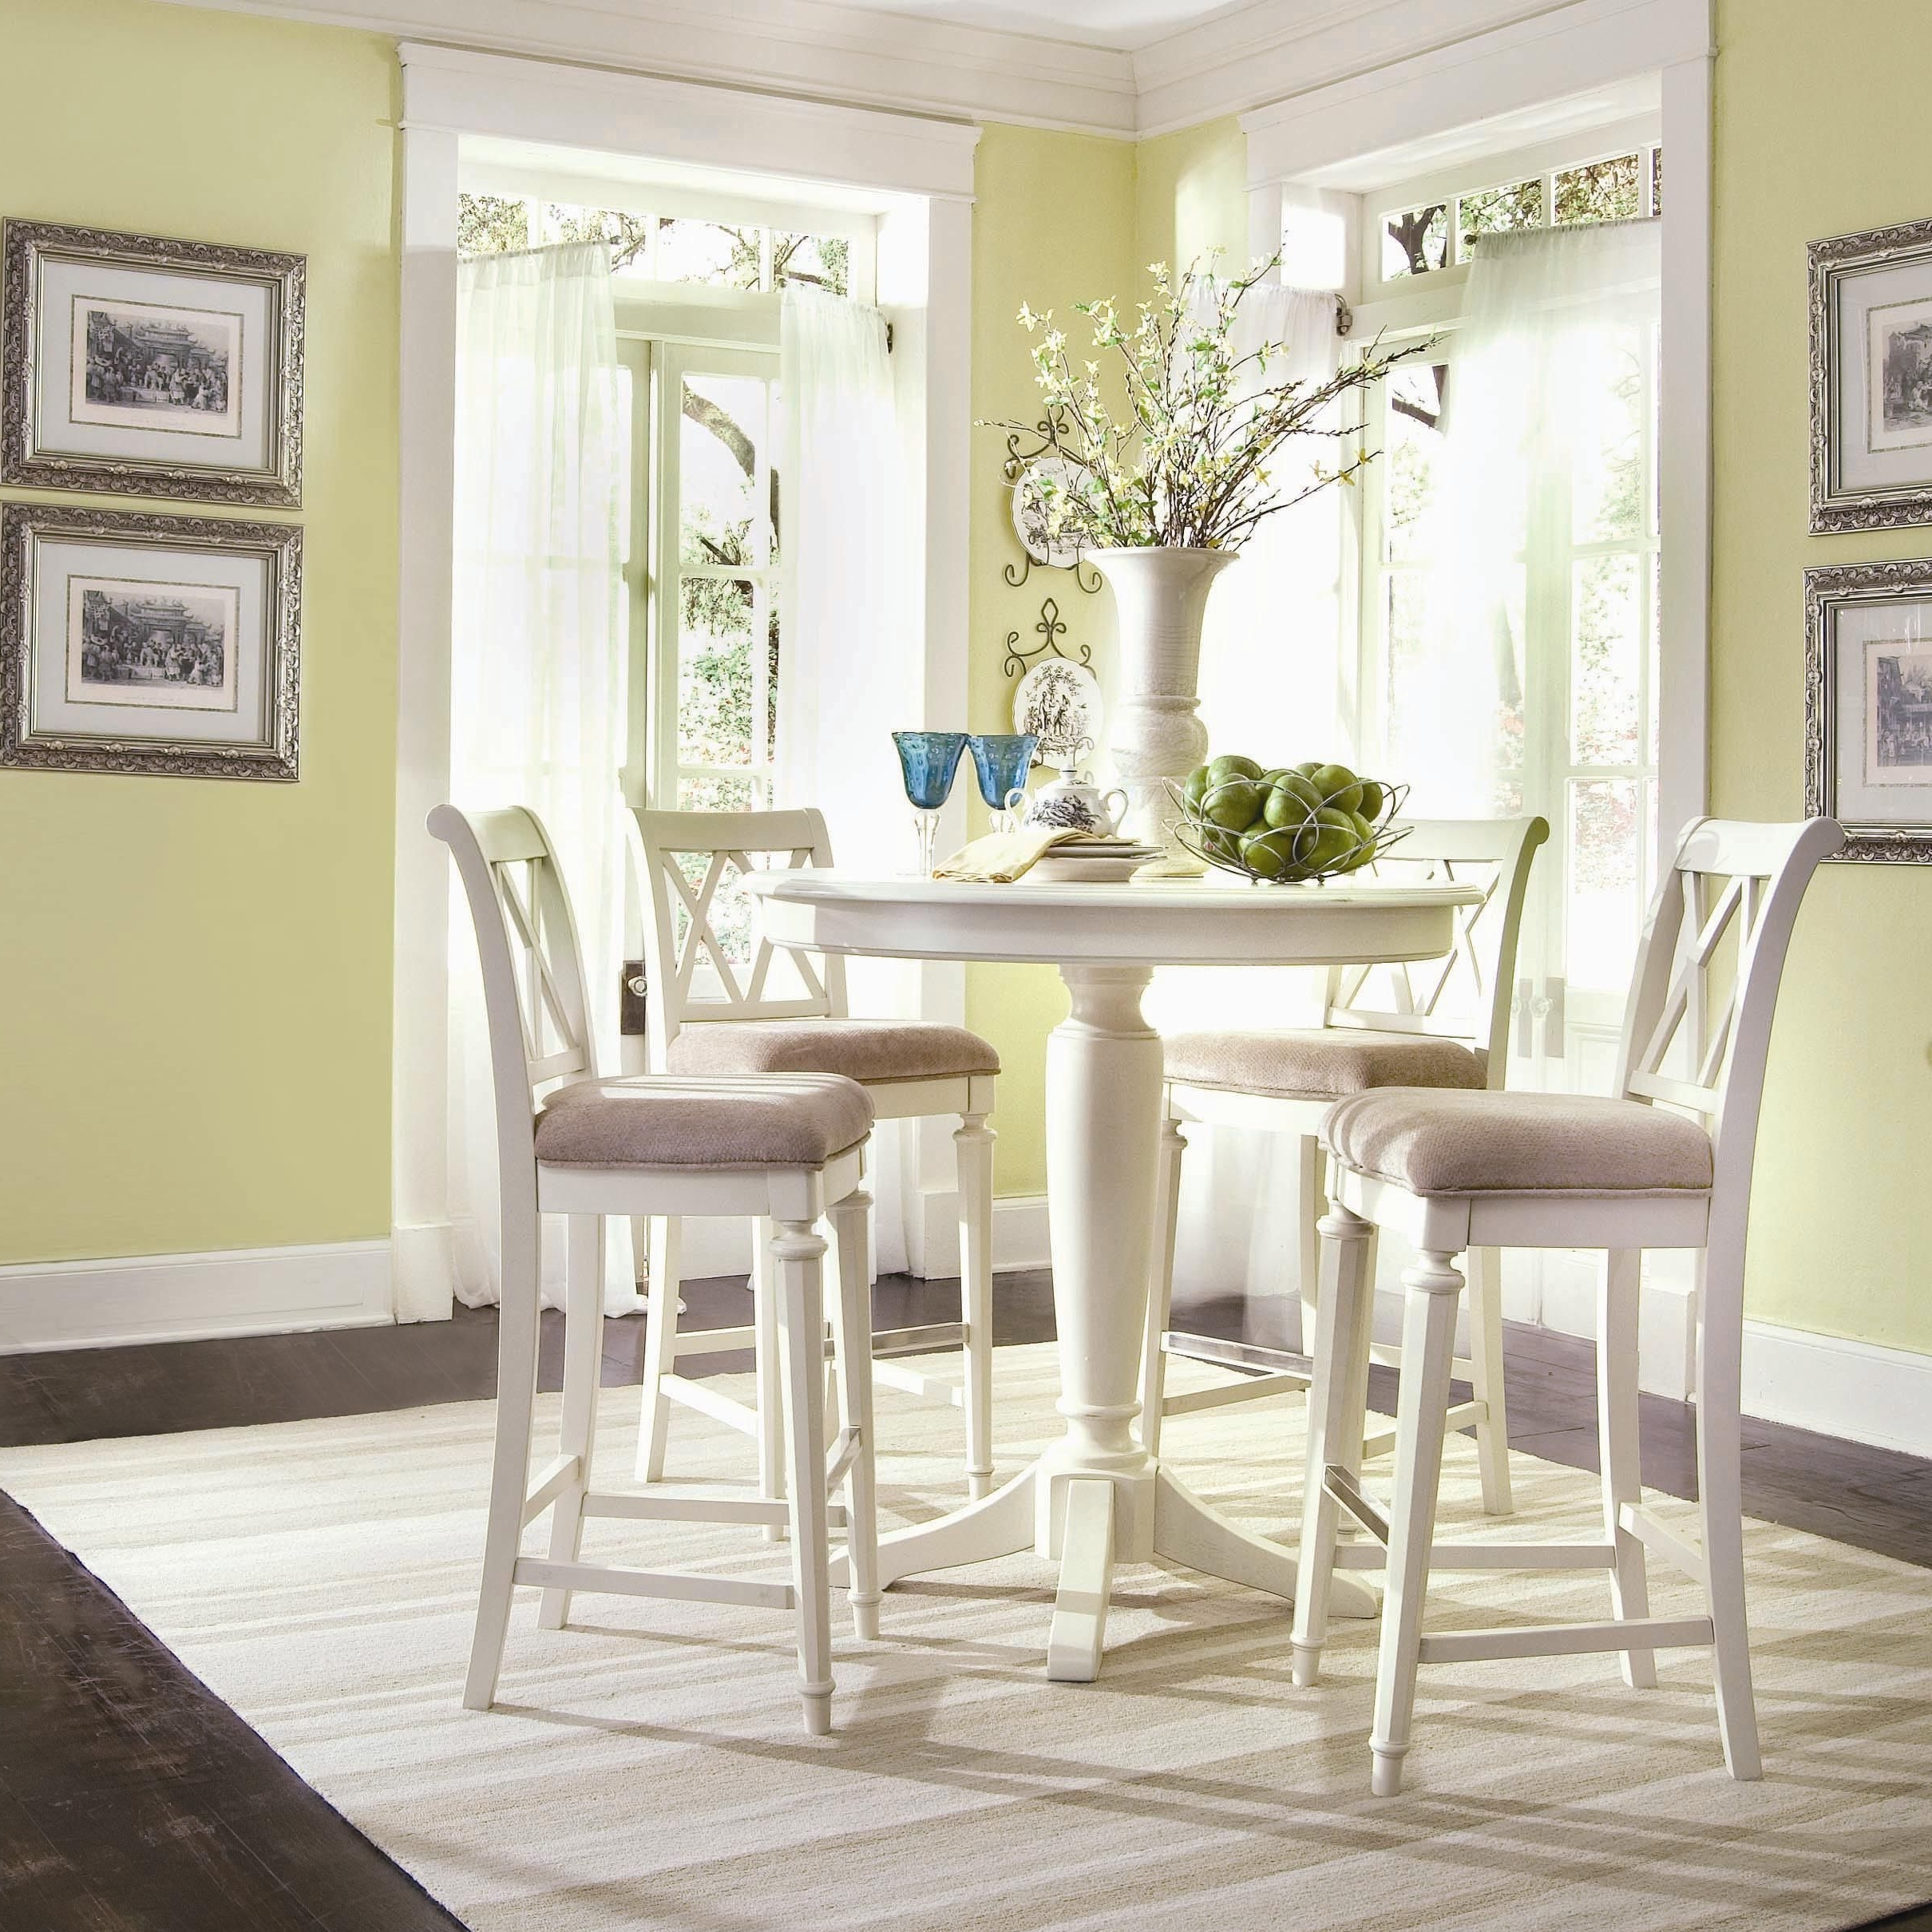 Create A Cottage Look With A Small Gathering Table! #cottage #life Regarding Most Current Palazzo 9 Piece Dining Sets With Pearson White Side Chairs (View 10 of 25)